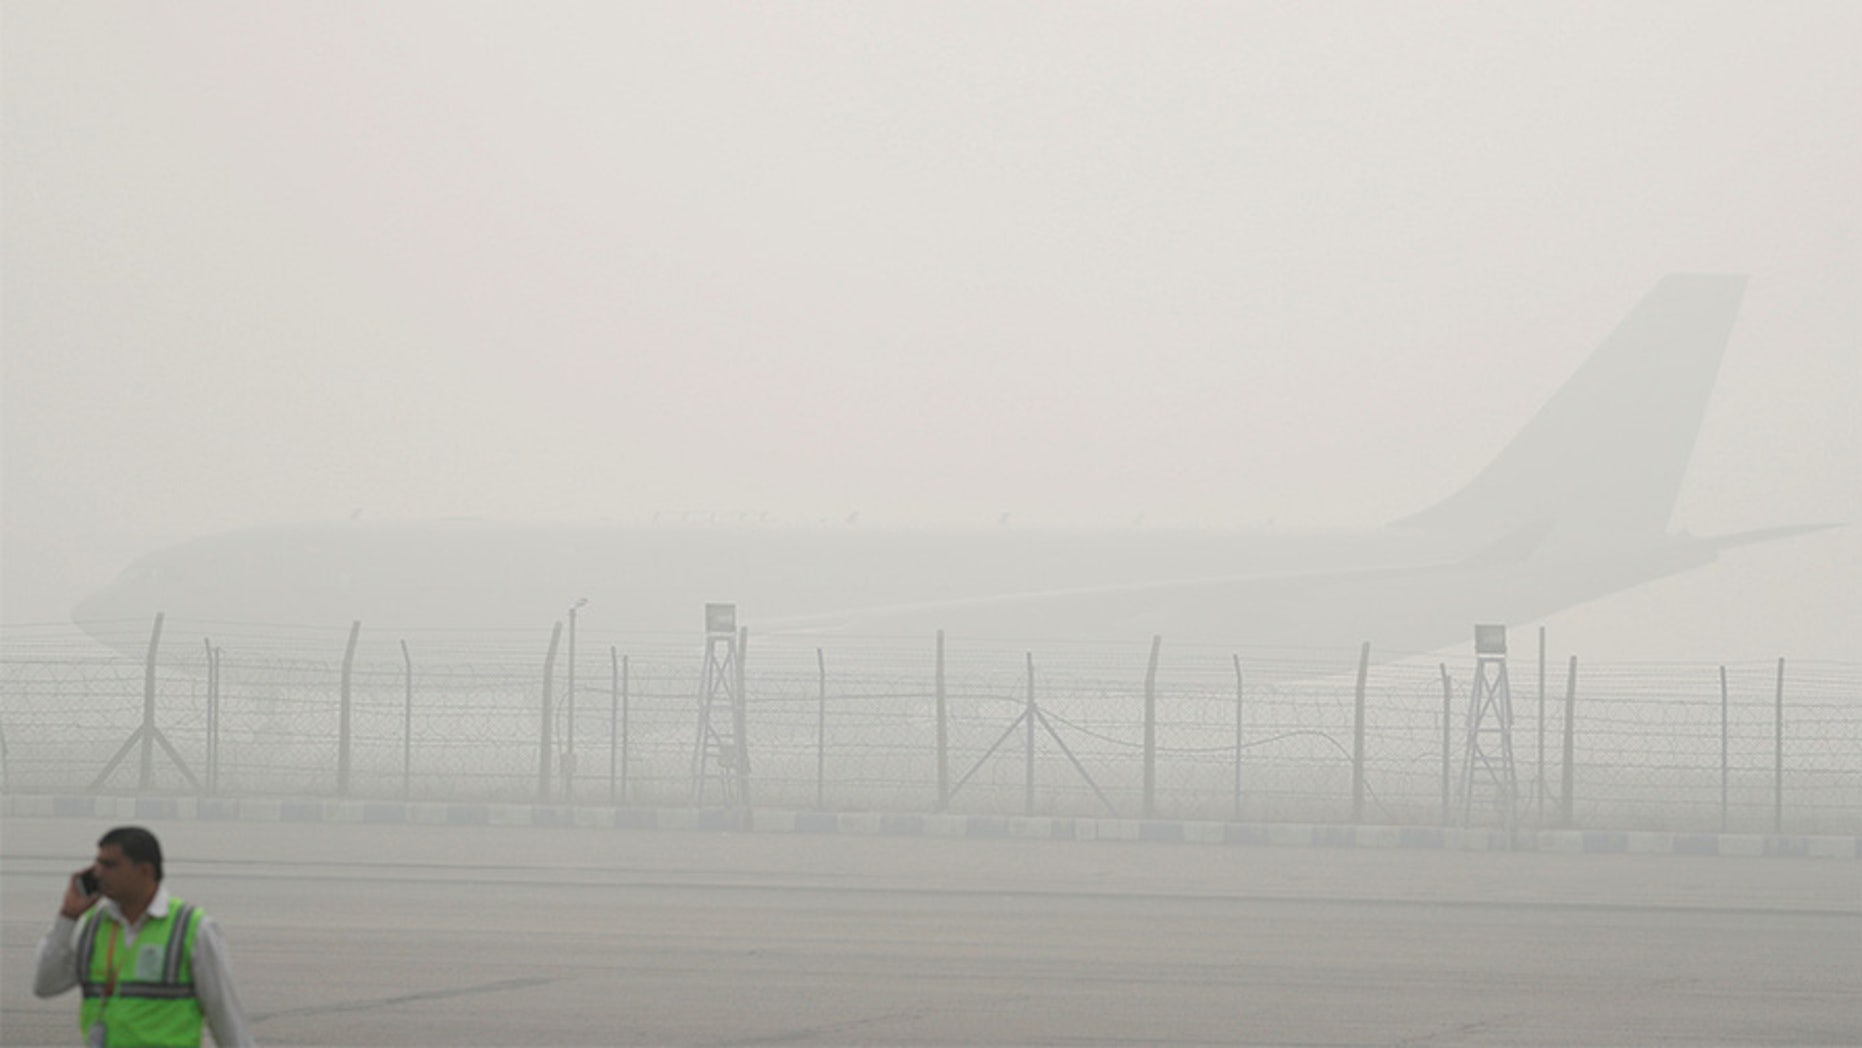 The airline has temporarily suspended flights to New Delhi as toxic smog enshrouds India's capital city.